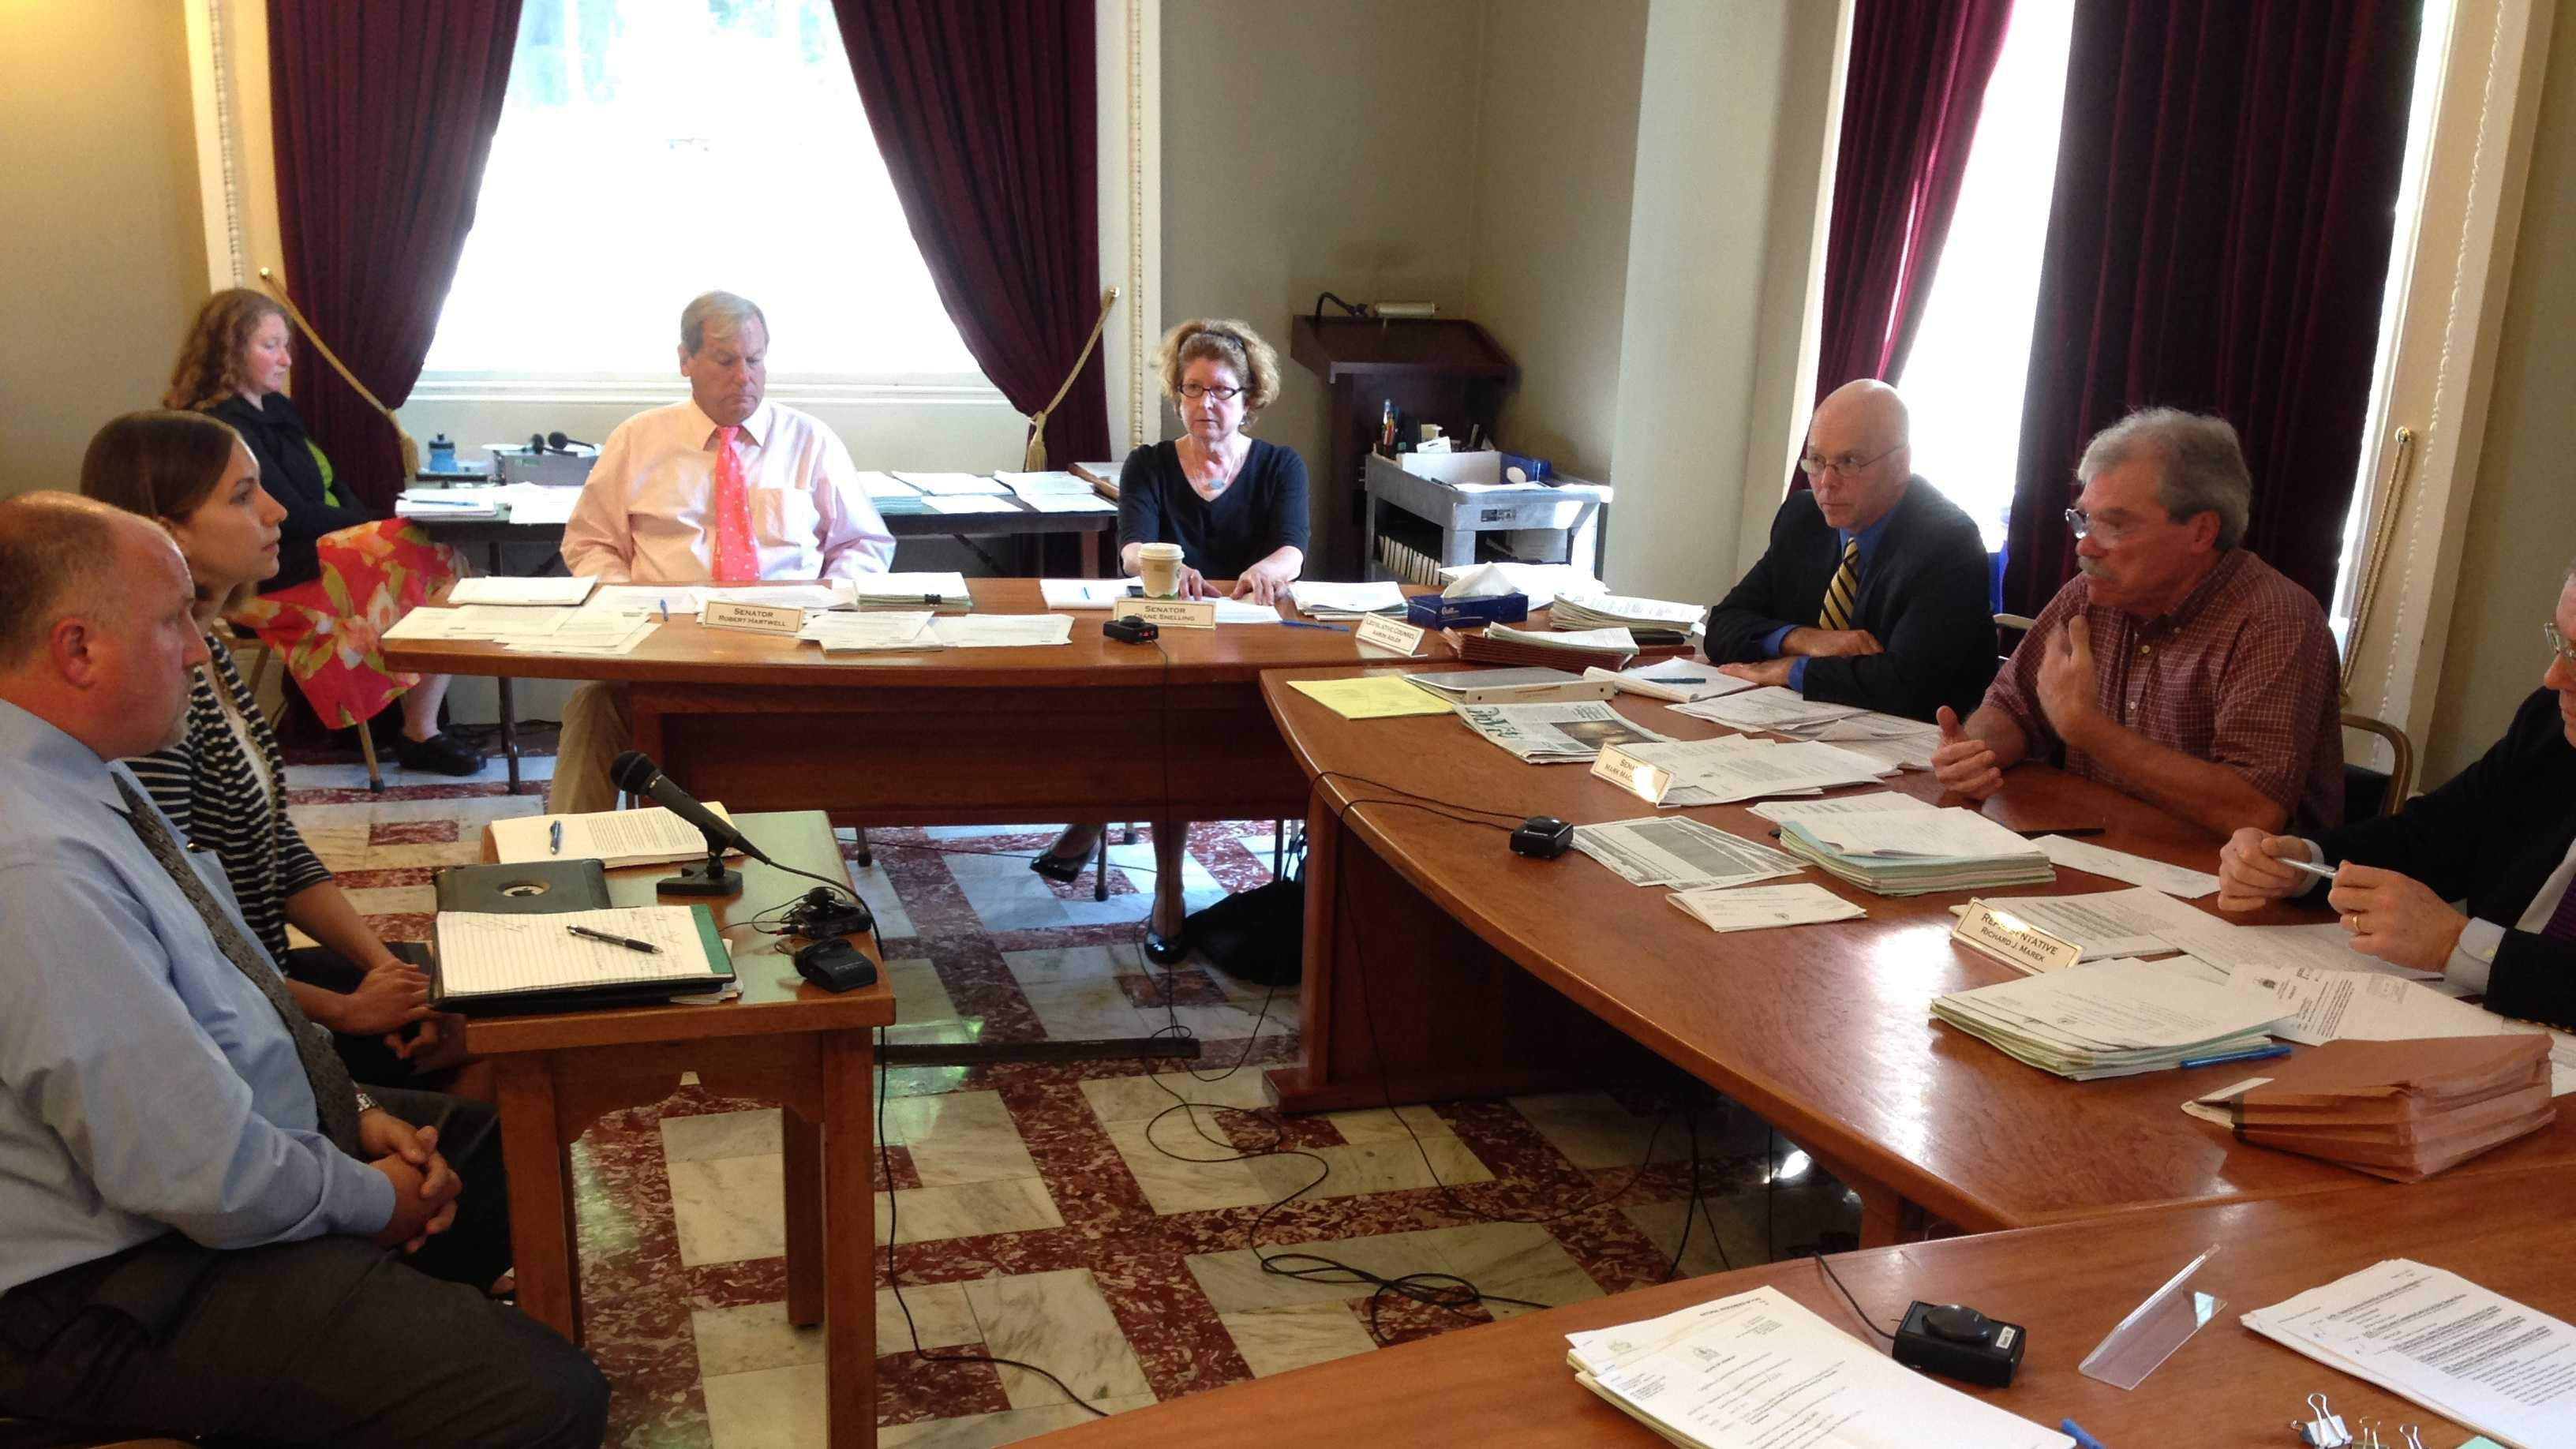 The Legislative Committee on Administrative Rules meeting Thursday at the Statehouse.